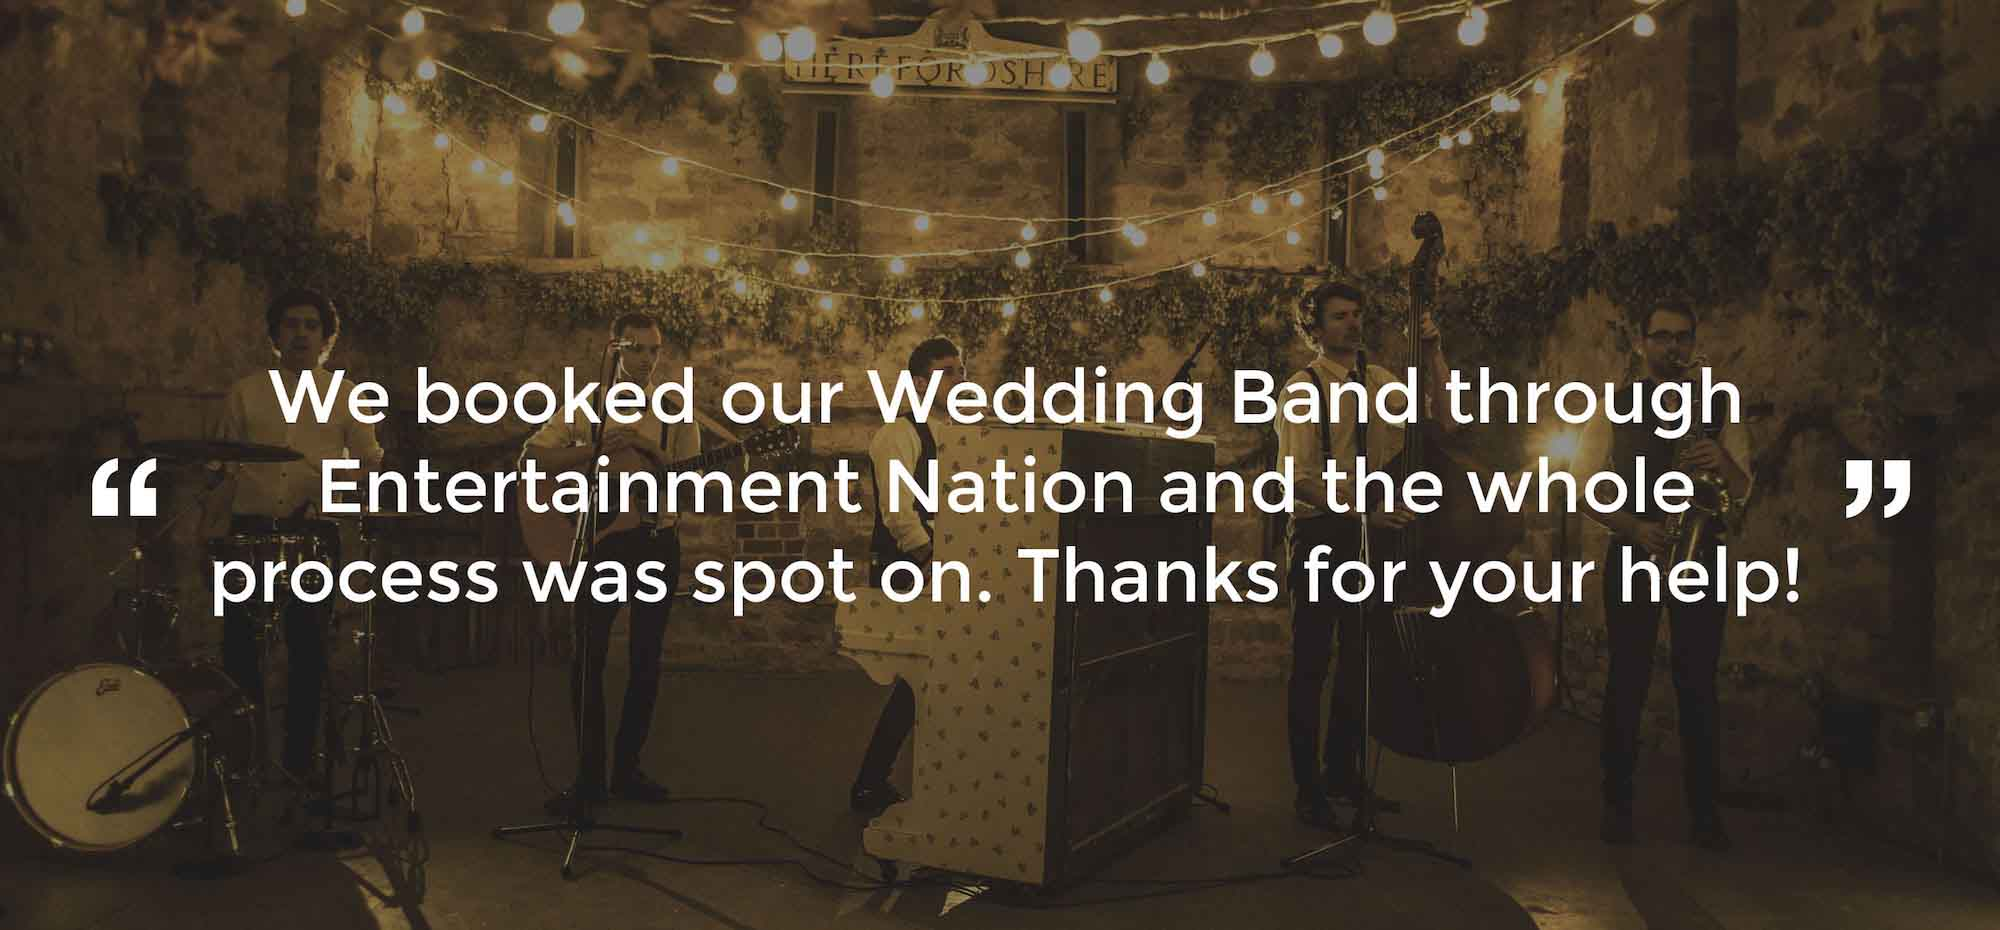 Client Review of a Wedding Band Europe